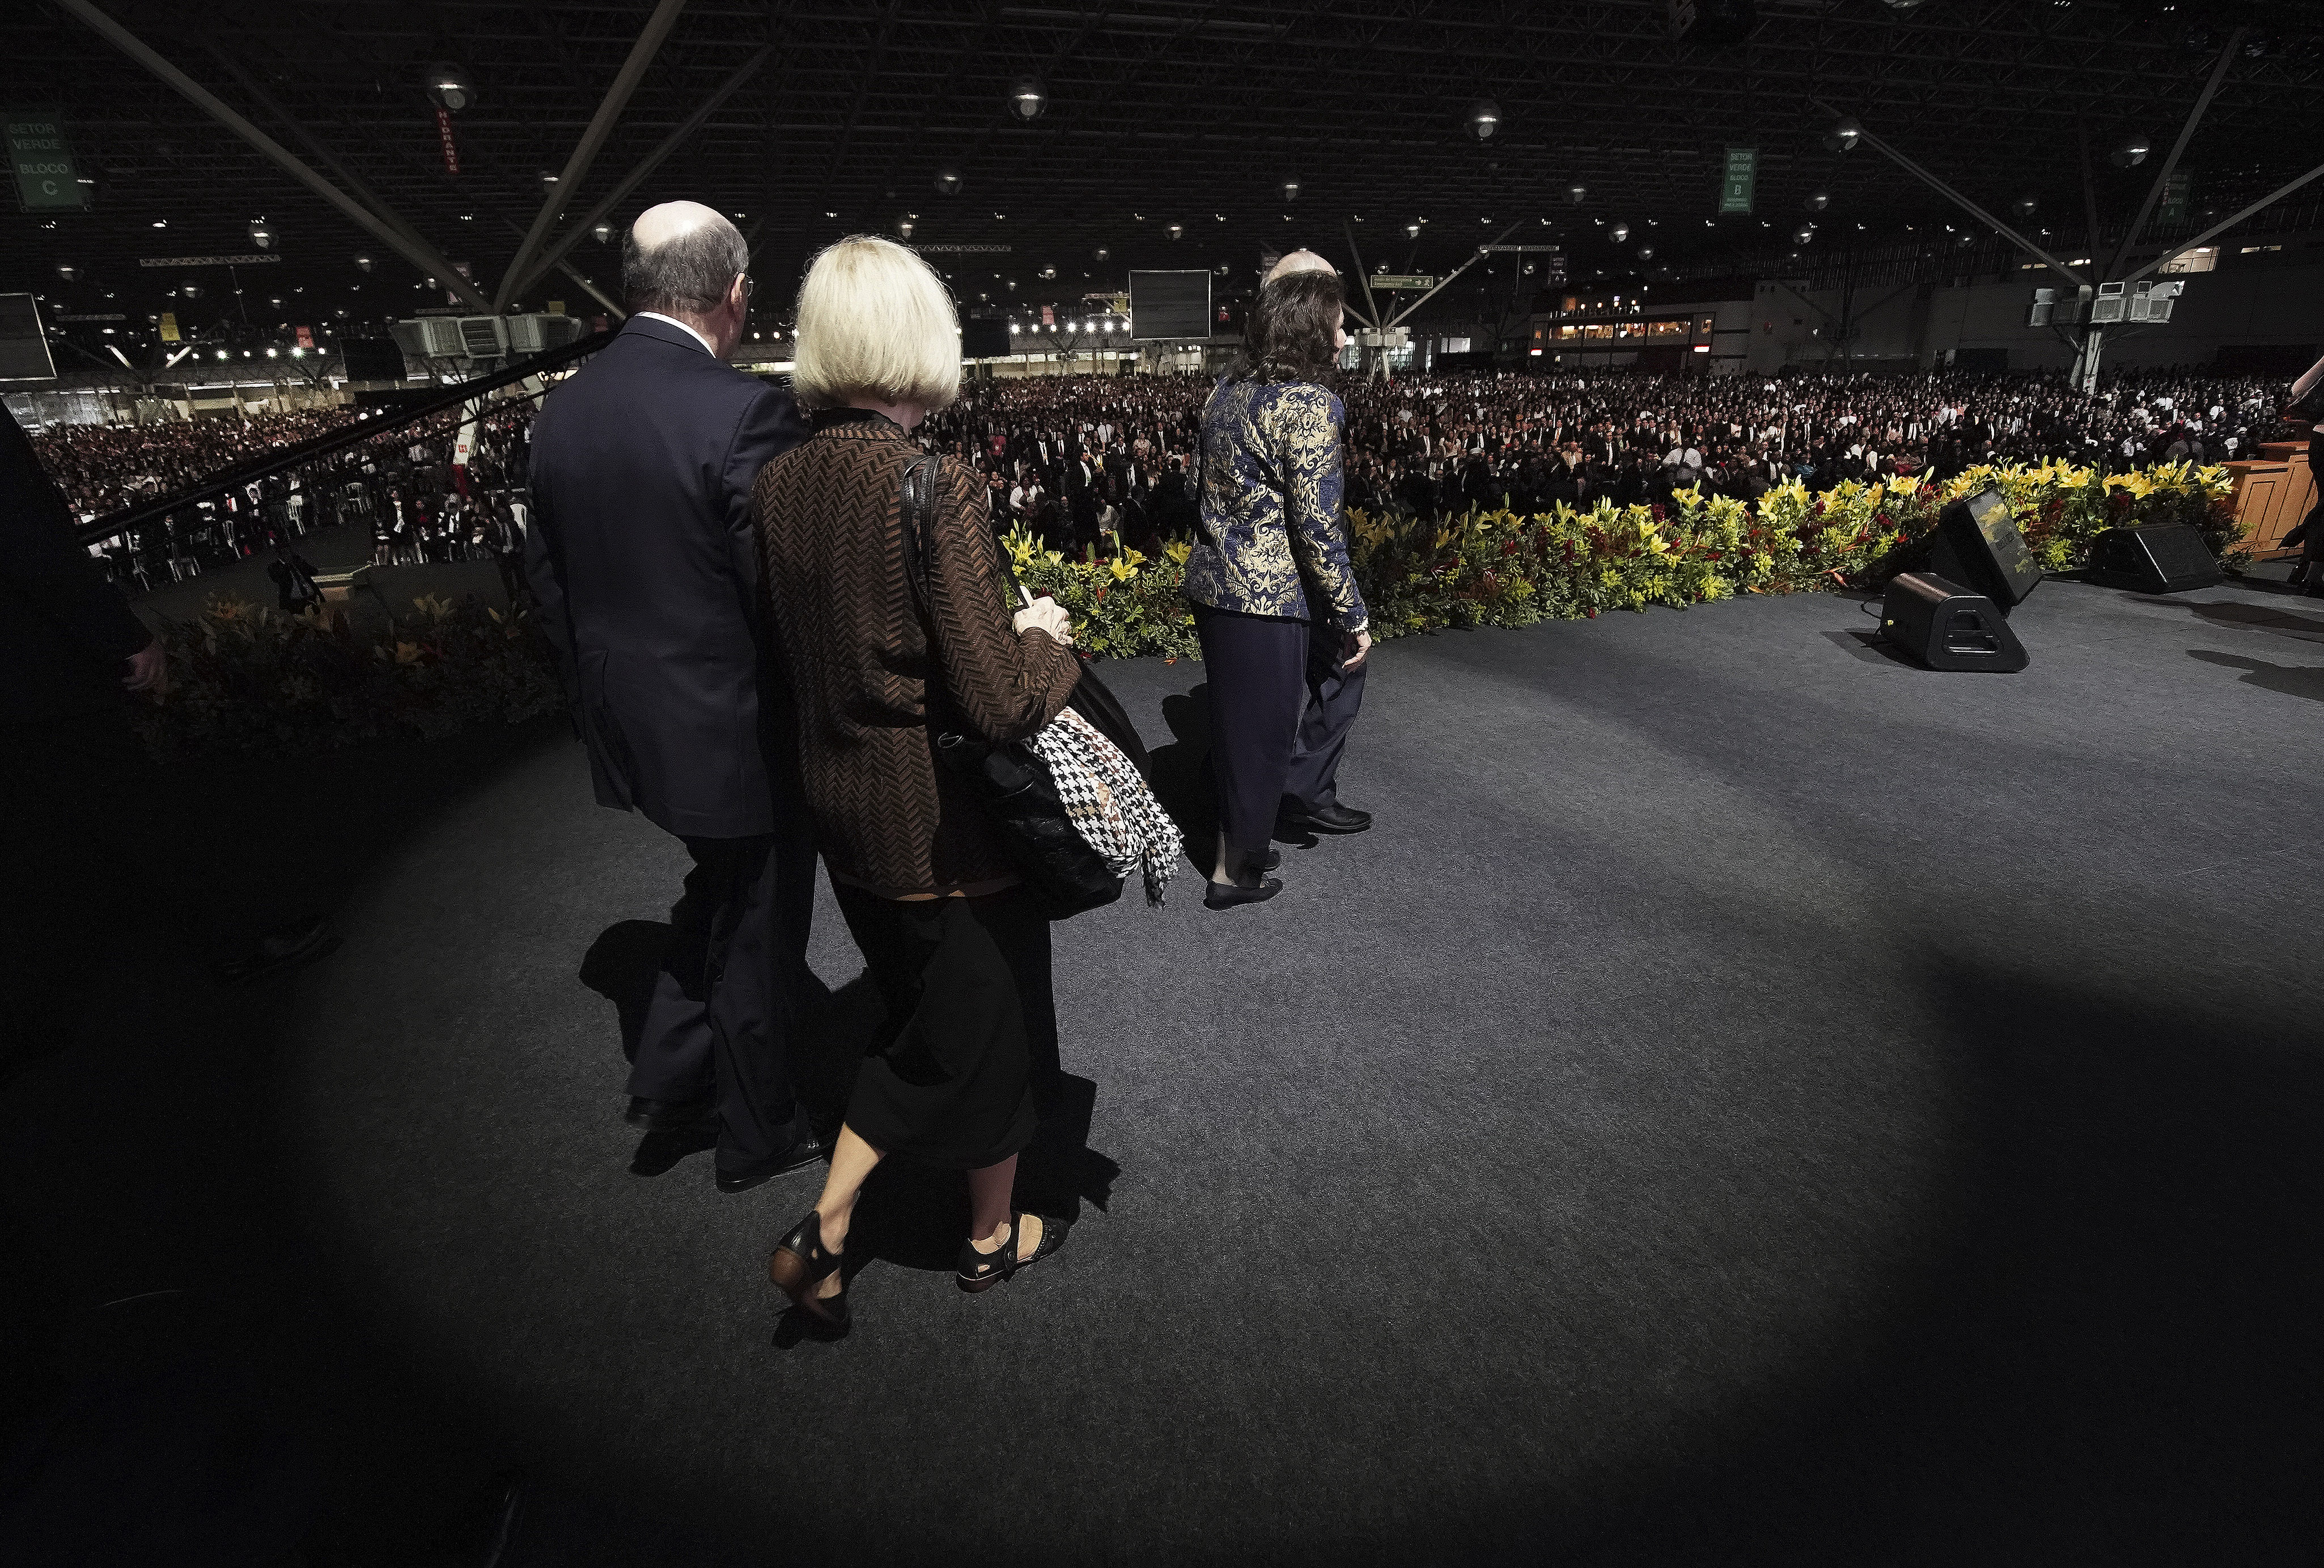 President Russell M. Nelson of The Church of Jesus Christ of Latter-day Saints and his wife, Sister Wendy Nelson, and Elder Quentin L. Cook of the Quorum of the Twelve Apostles and his wife, Sister Mary Cook, walk onto the stage for a devotional in Sao Paulo, Brazil, on Sunday, Sept. 1, 2019.